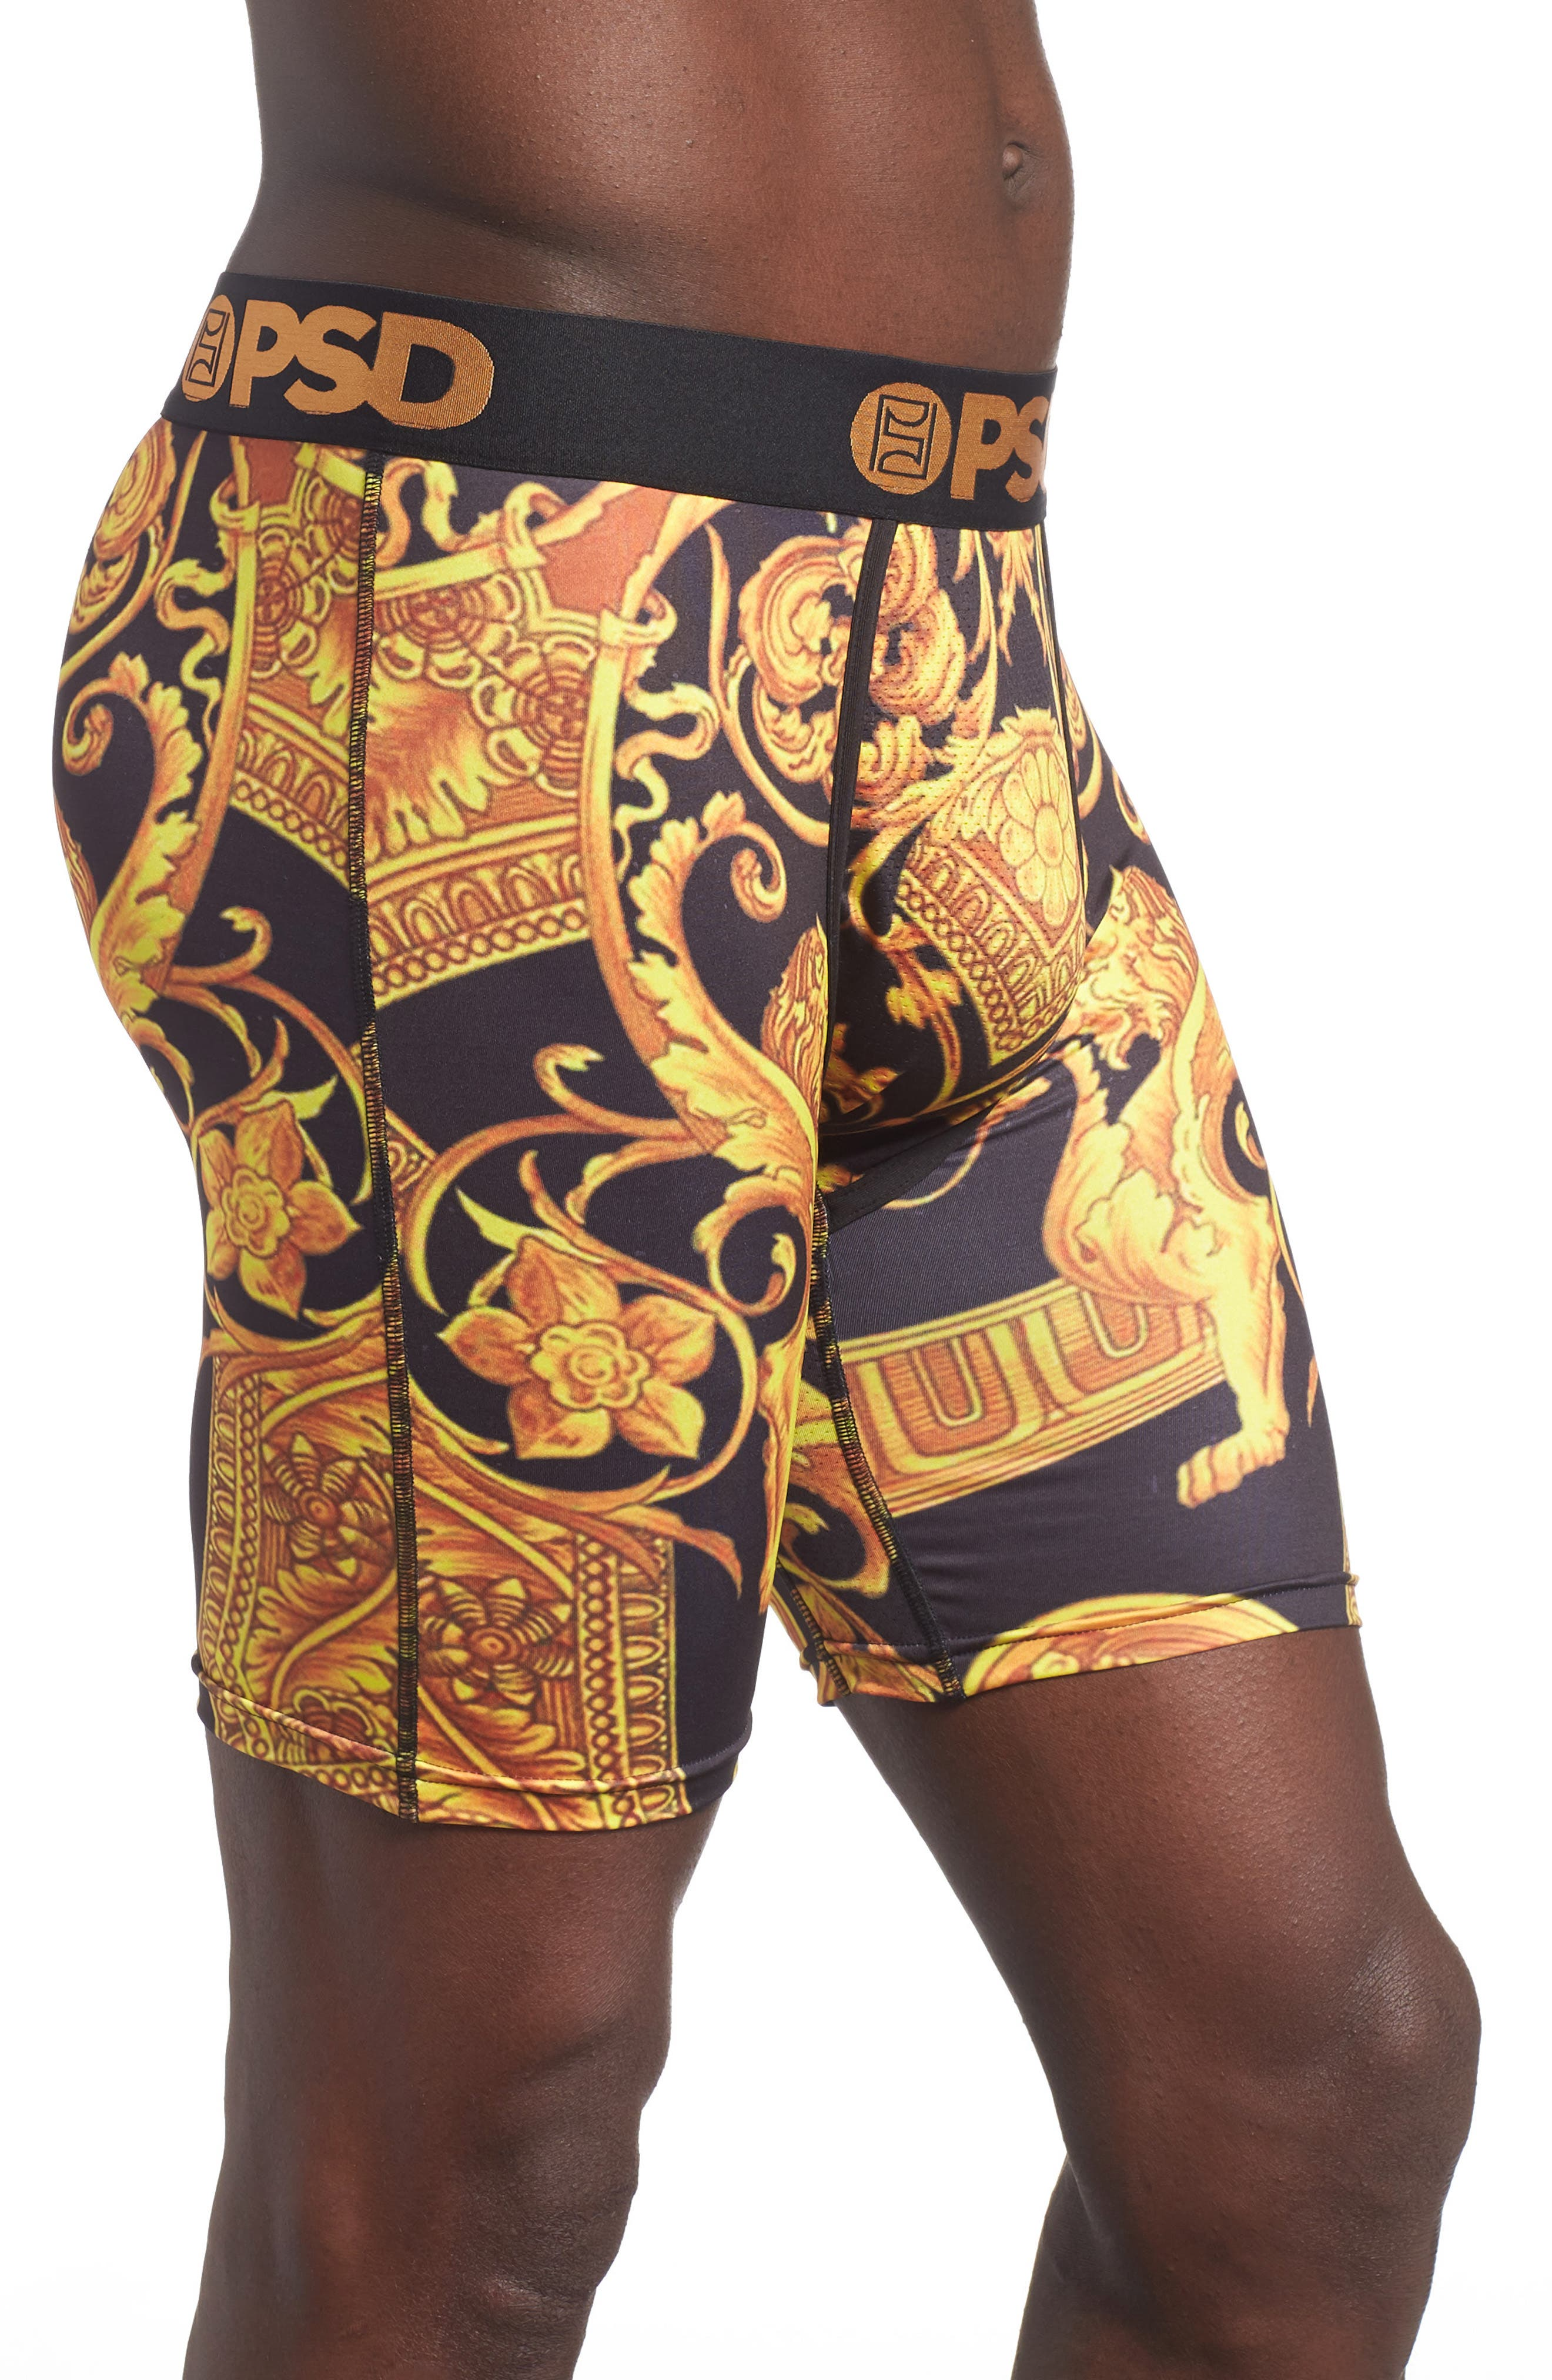 Gold Sace Boxer Briefs,                             Alternate thumbnail 3, color,                             710